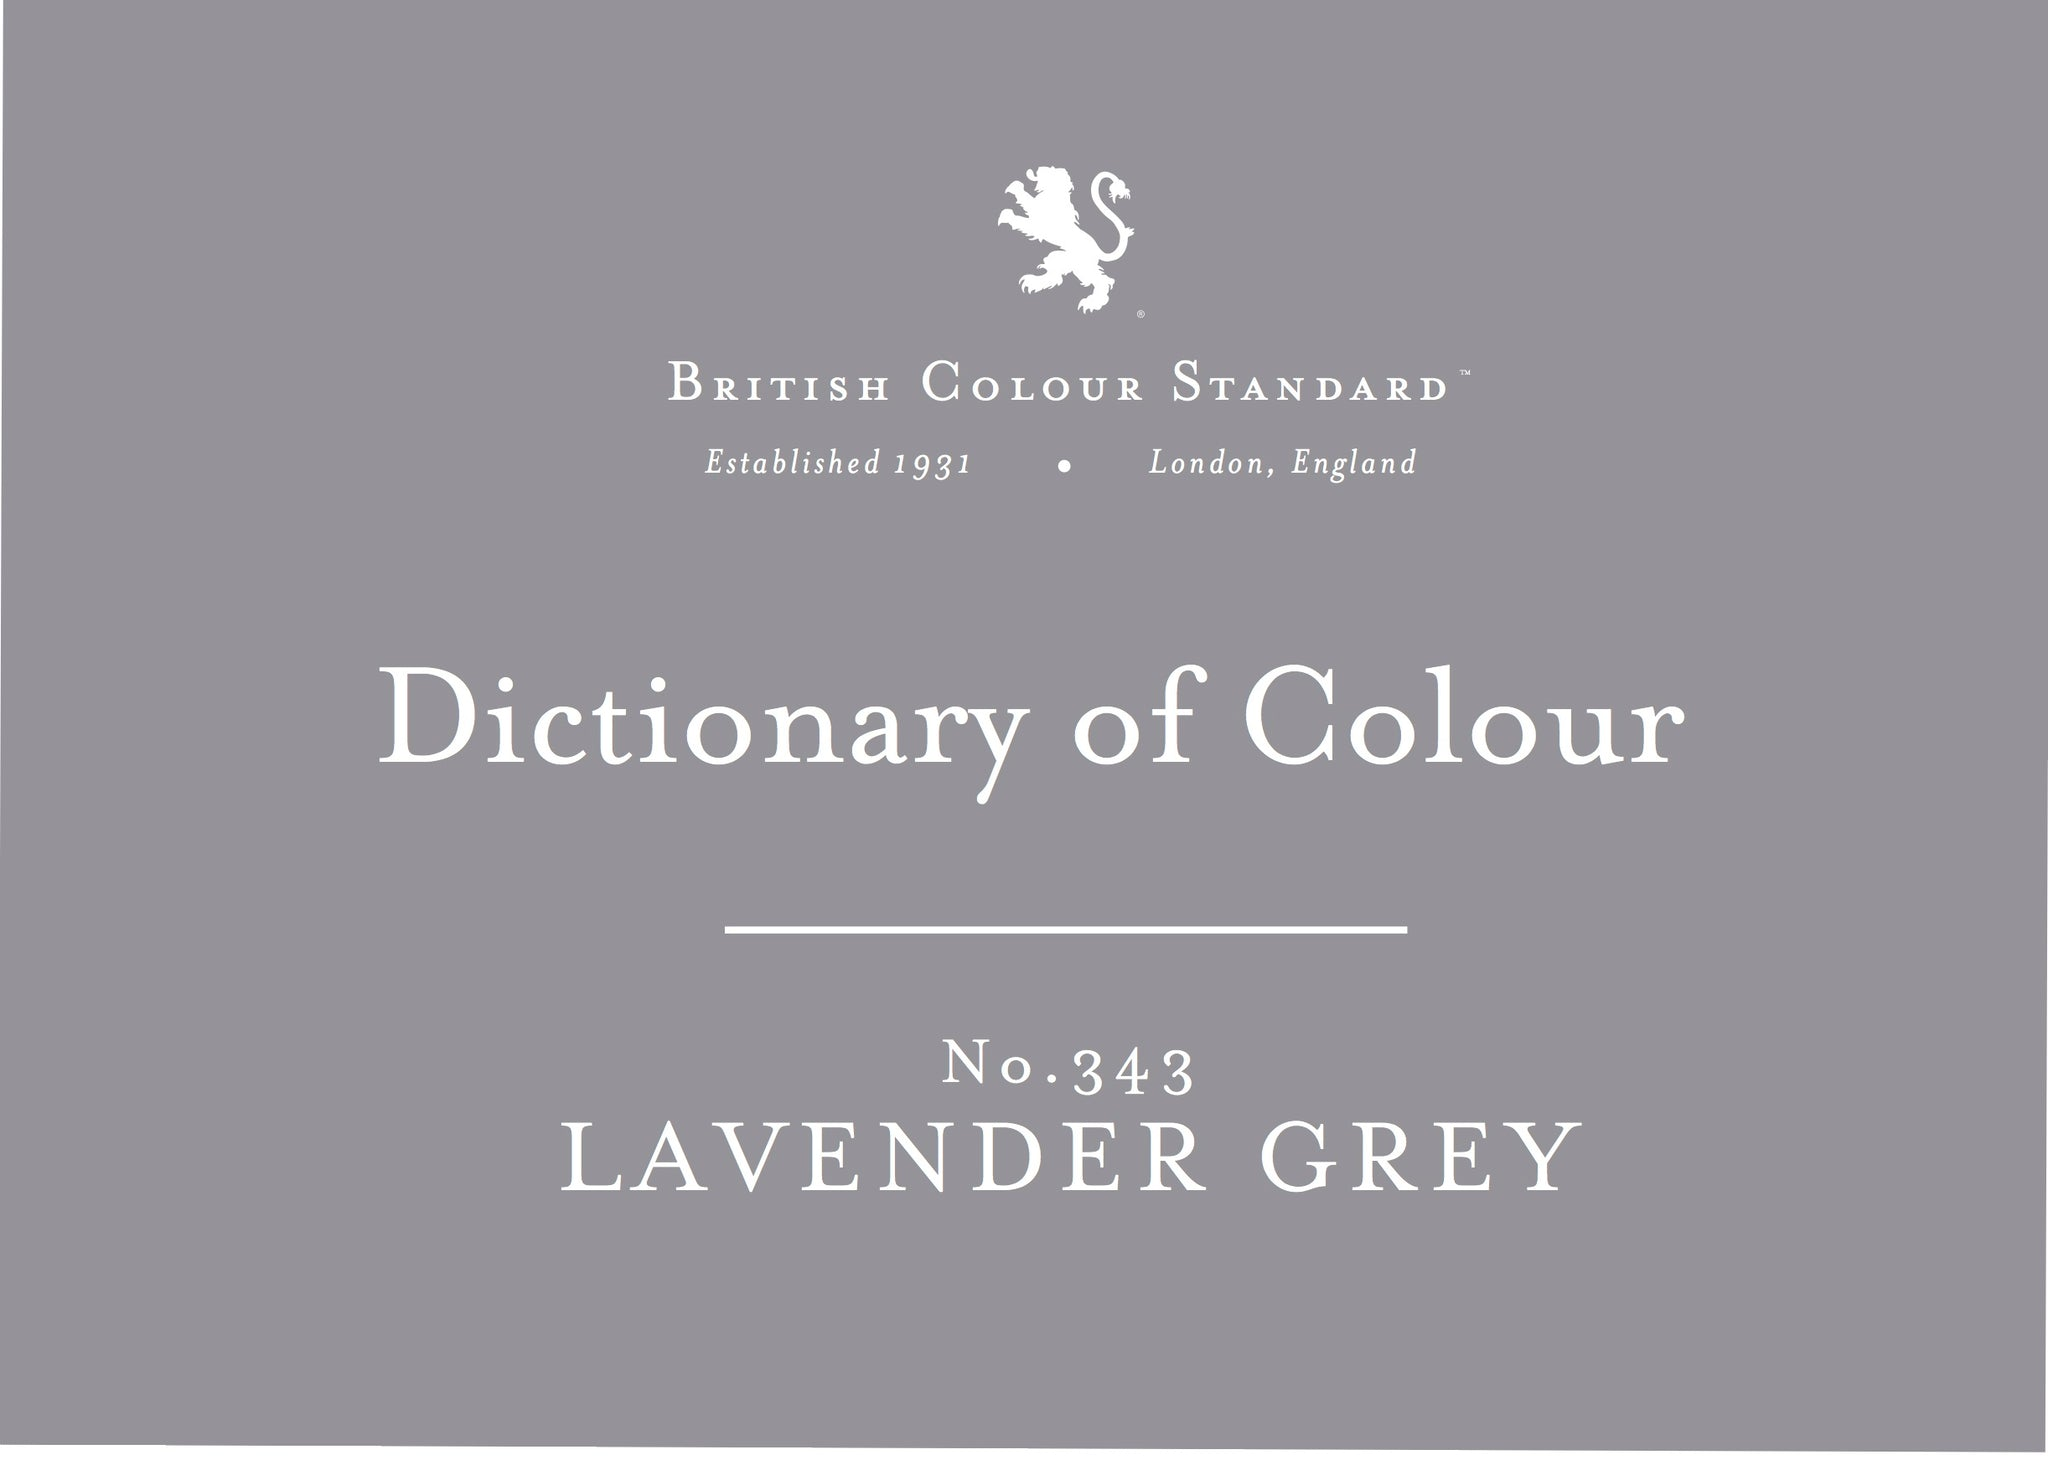 BRITISH COLOUR STANDARD - Lavender Grey No. 343